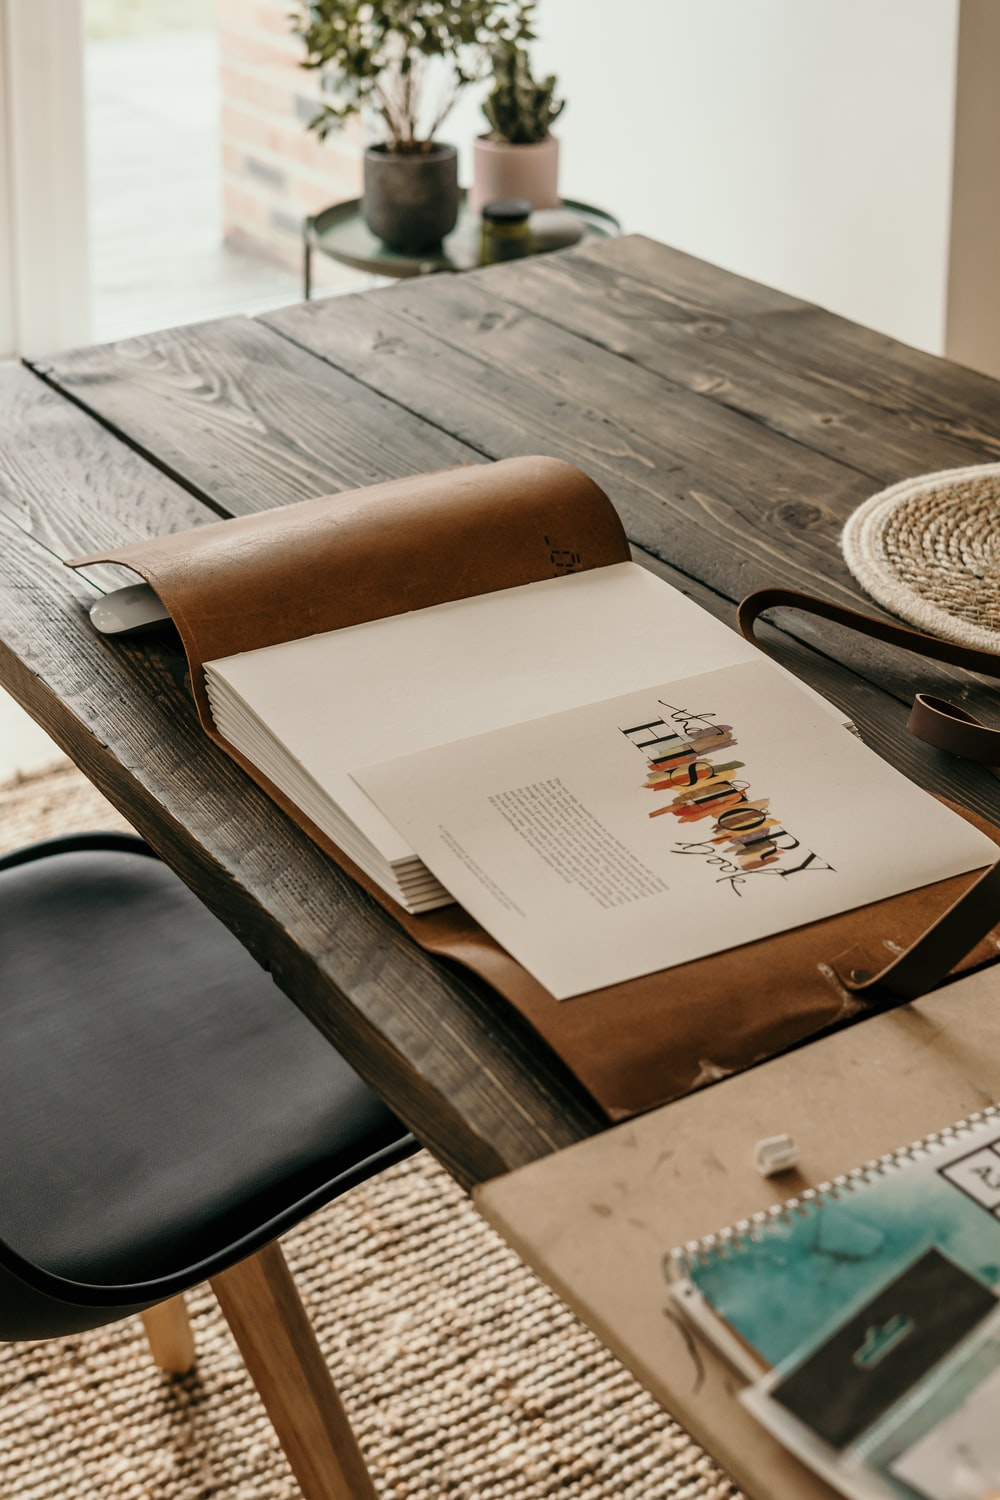 white book on black wooden table